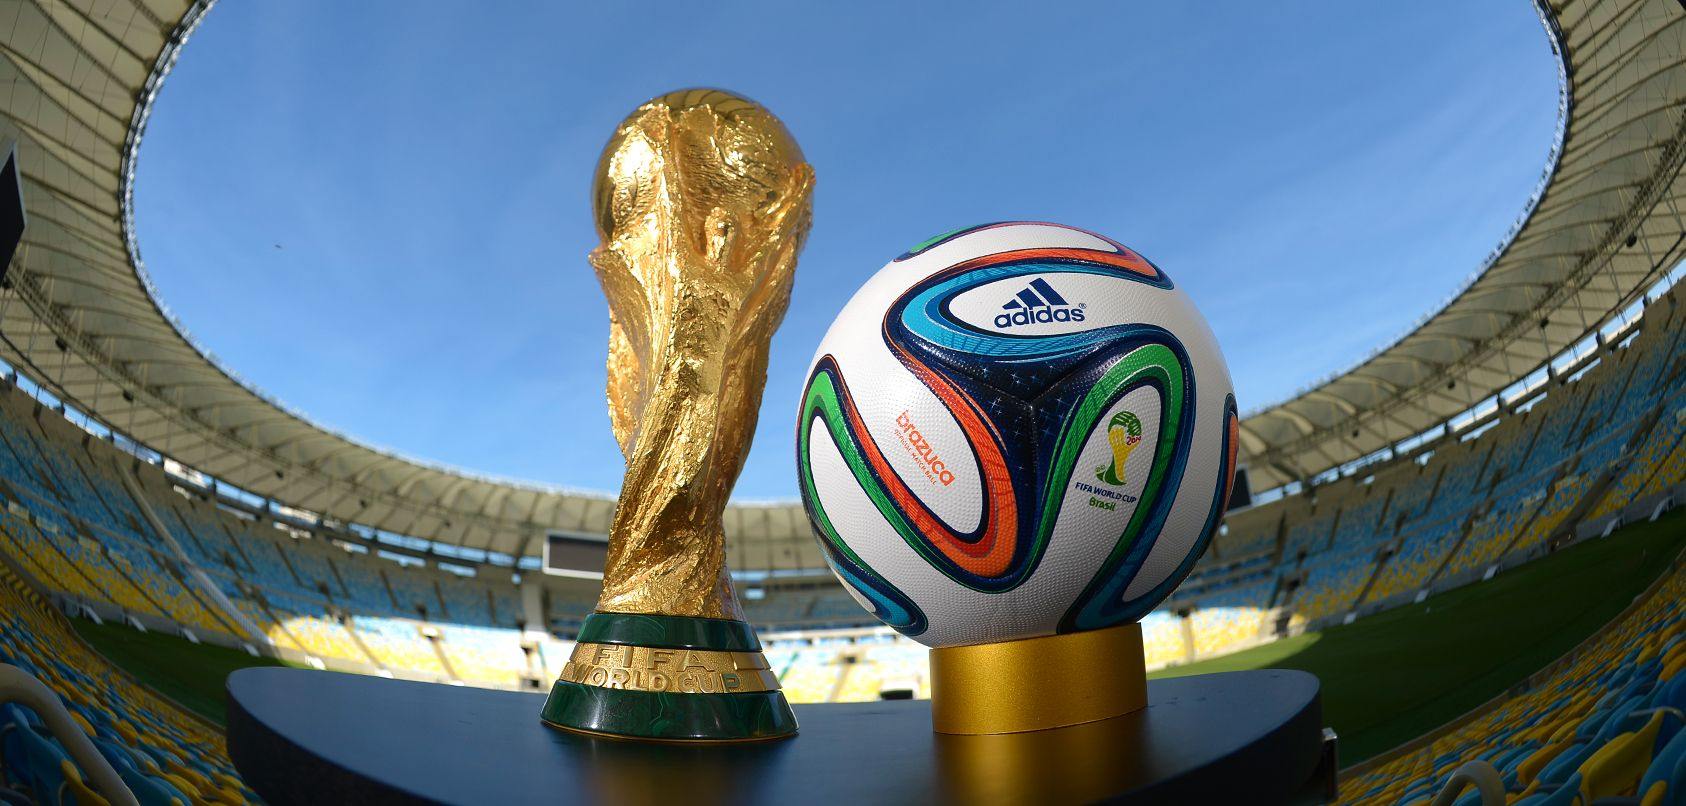 The Official 2014 FIFA World Cup Ball - adidas Brazuca...Available at SoccerPro NOW!